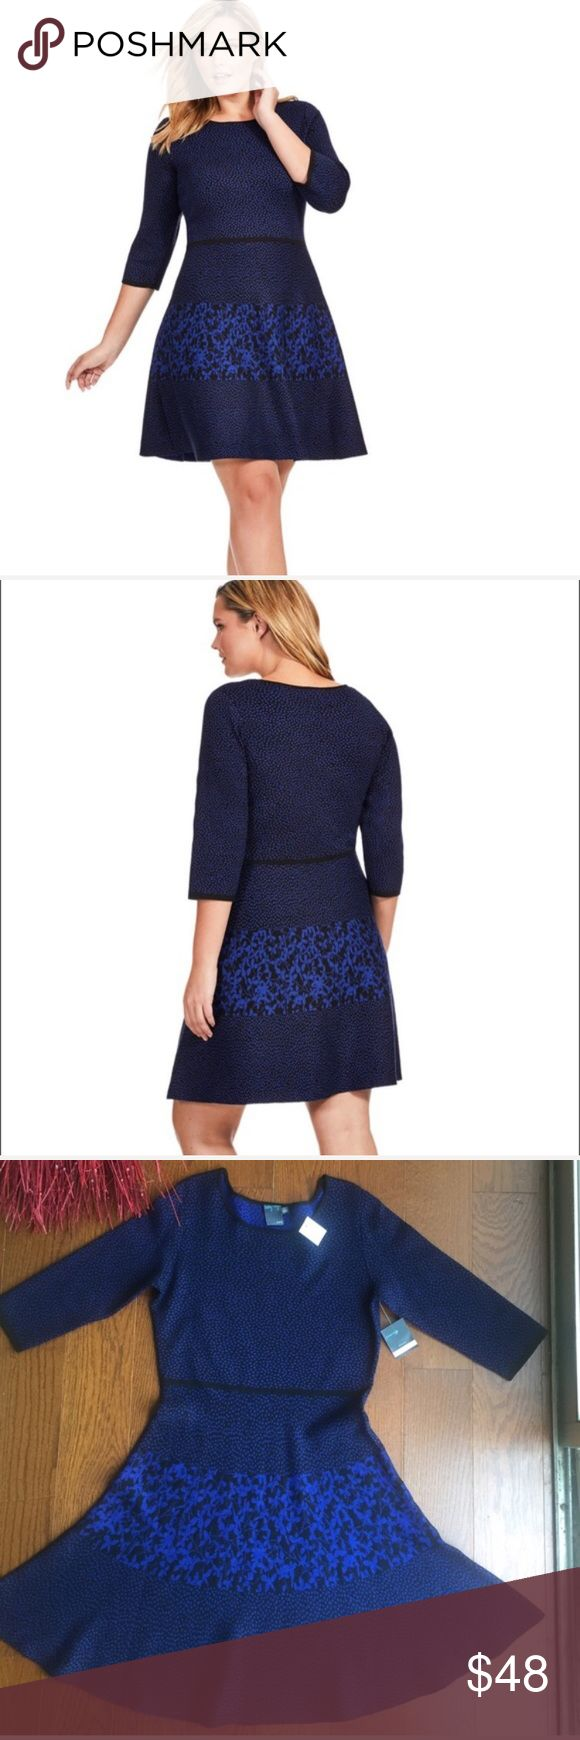 💎GABBY SKYE 💎BLUE DOT PRINT KNIT DRESS💎 Nordstrom brand . This is a knit dress that will pull over  fit and flair three fourths sleeves. Beautifully made nice and heavy. No belt needed!!! Black trim ban around waist for shape definition. 38 inches flat. Just add boots and tights for that winter look!!!GABBY SKYE Blue Dot Print Sweater Dress GABBY SKYE Dresses Midi